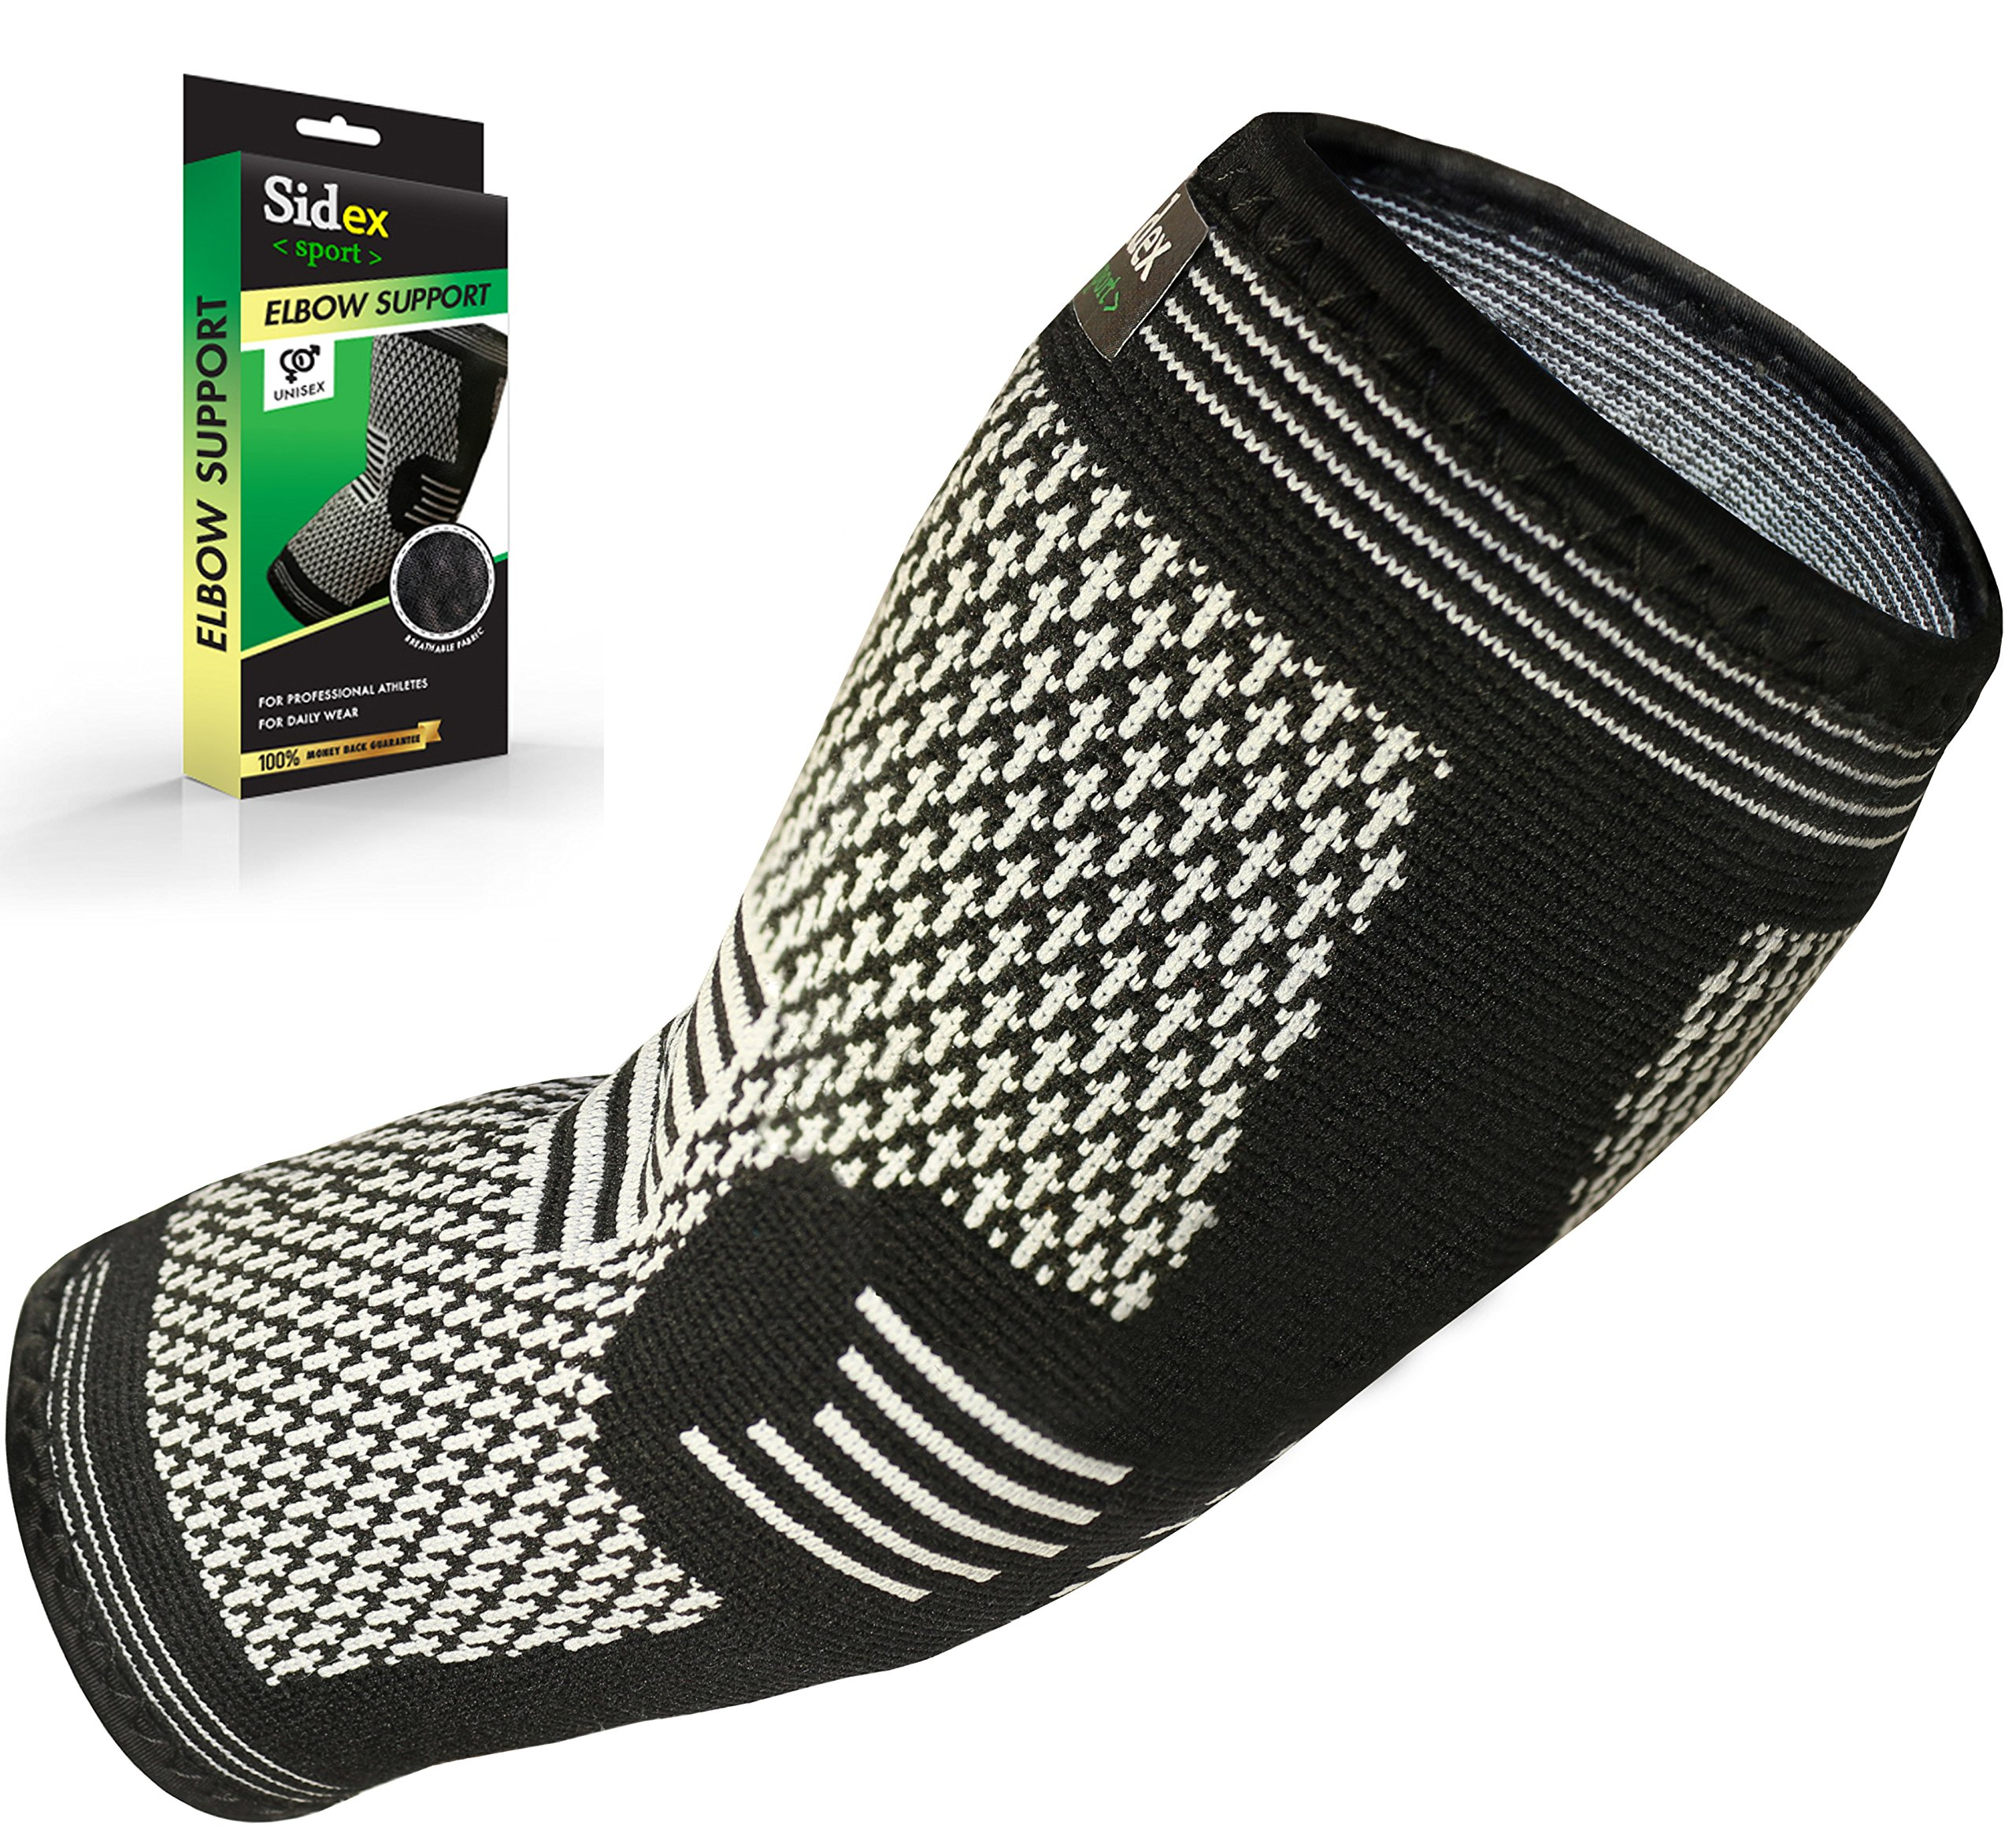 Elbow Brace Compression Sleeve - Arm Support for Tendonitis, Golf, Bowling, Tennis, Weightlift - Reduce Pain and Promotes Recovery! (B&w, Size: Medium)